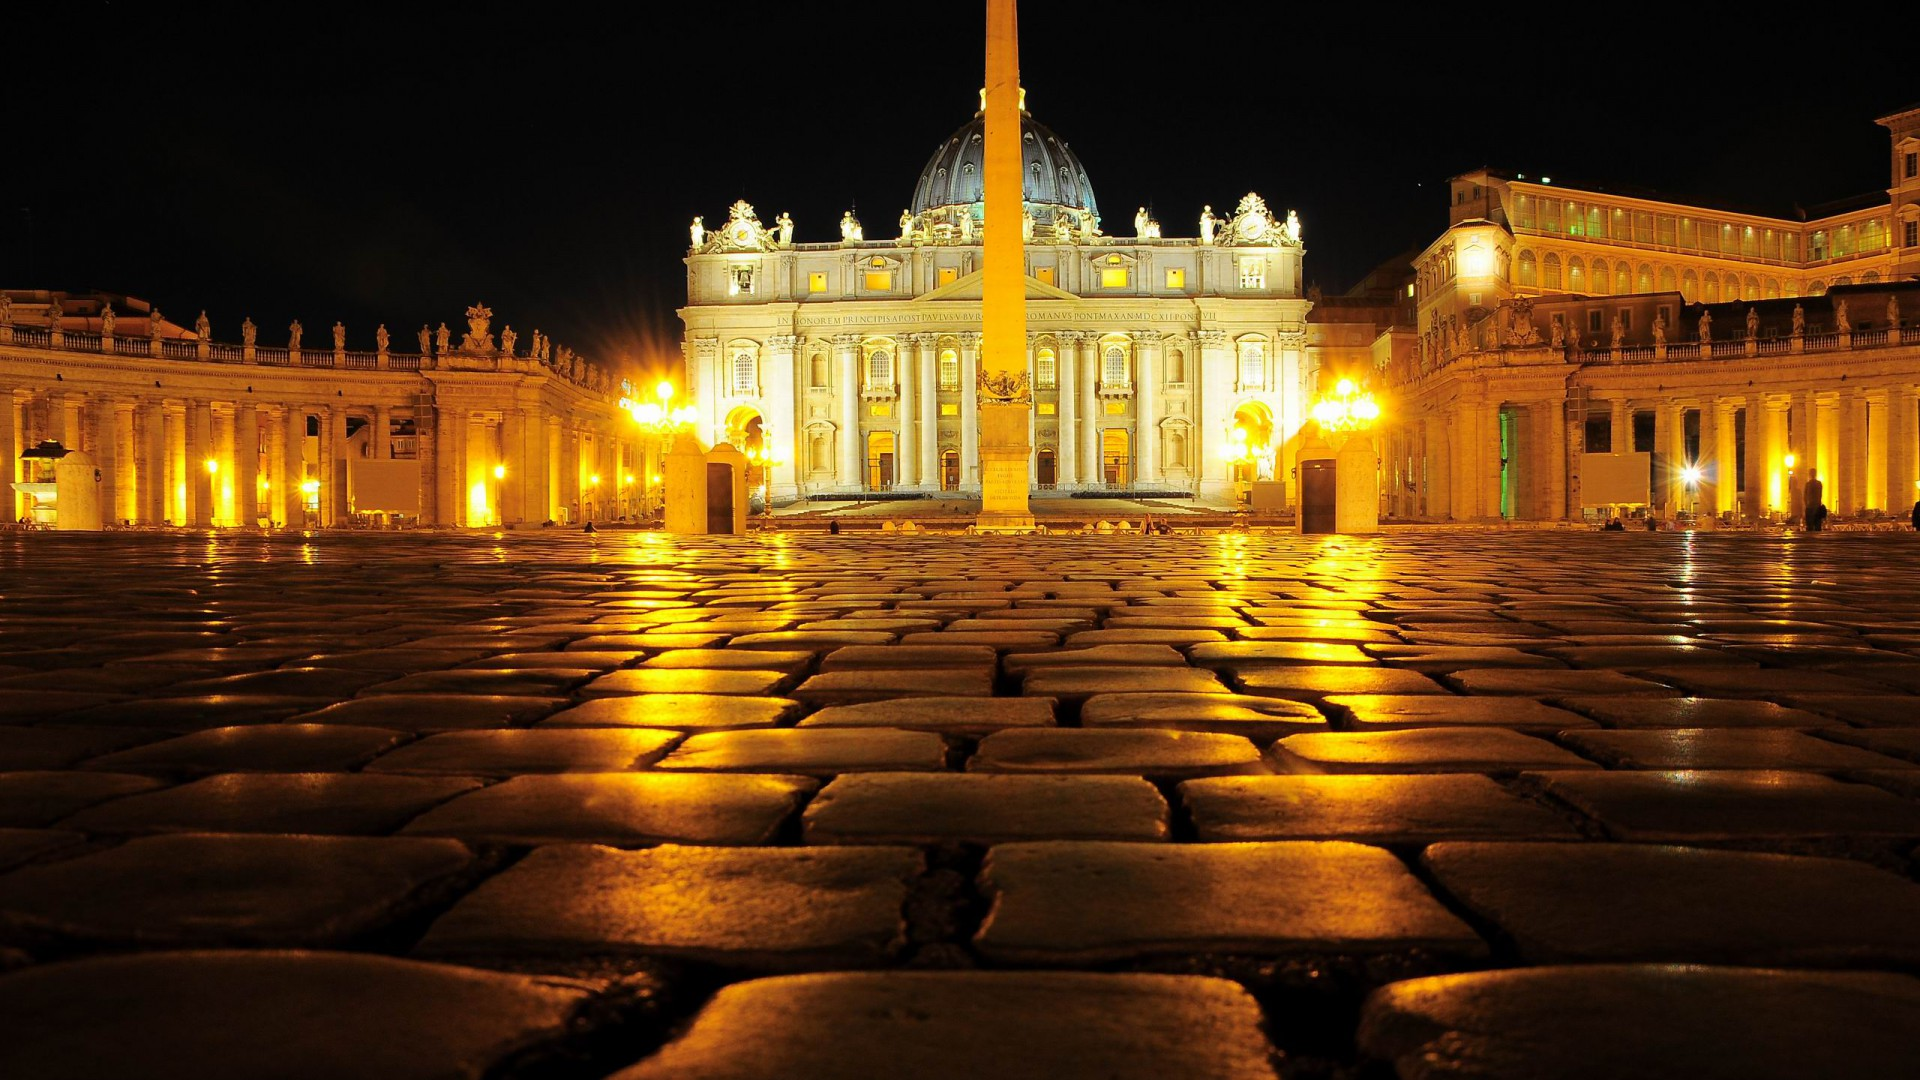 Vatican city wallpapers best wallpapers - San pedro wallpaper ...